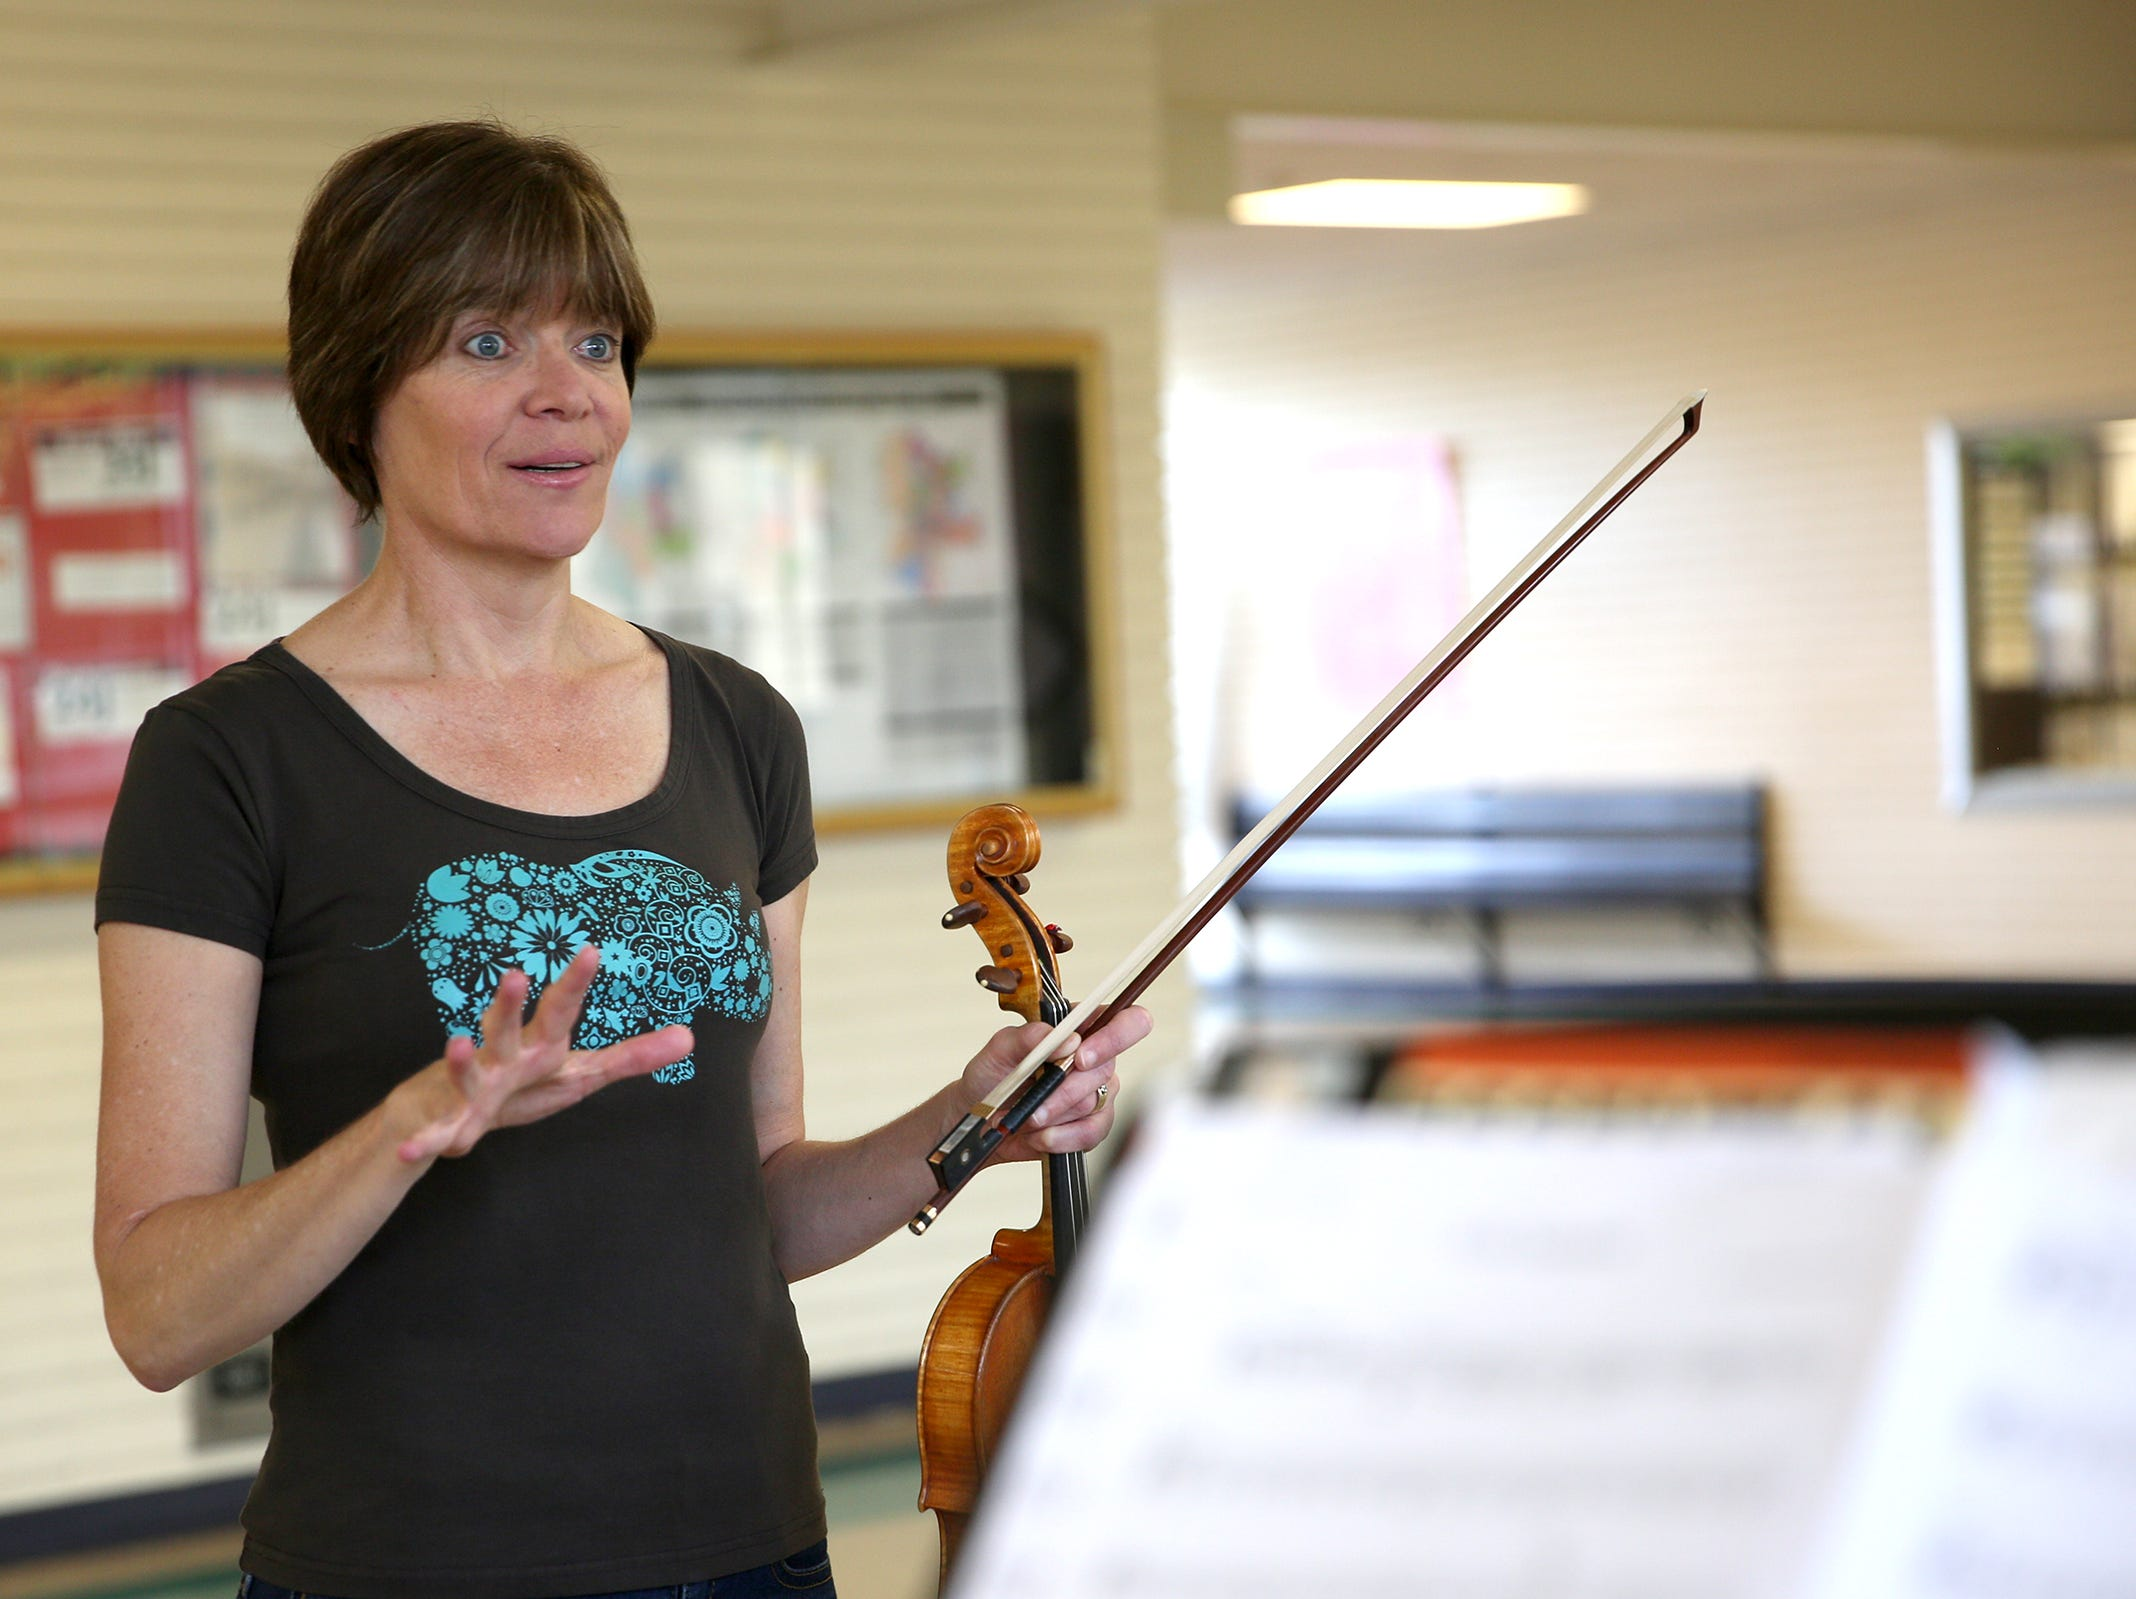 Music teacher, Sigrun Oprea, instructs students during practice at Waldo Middle School on April 19, 2019.